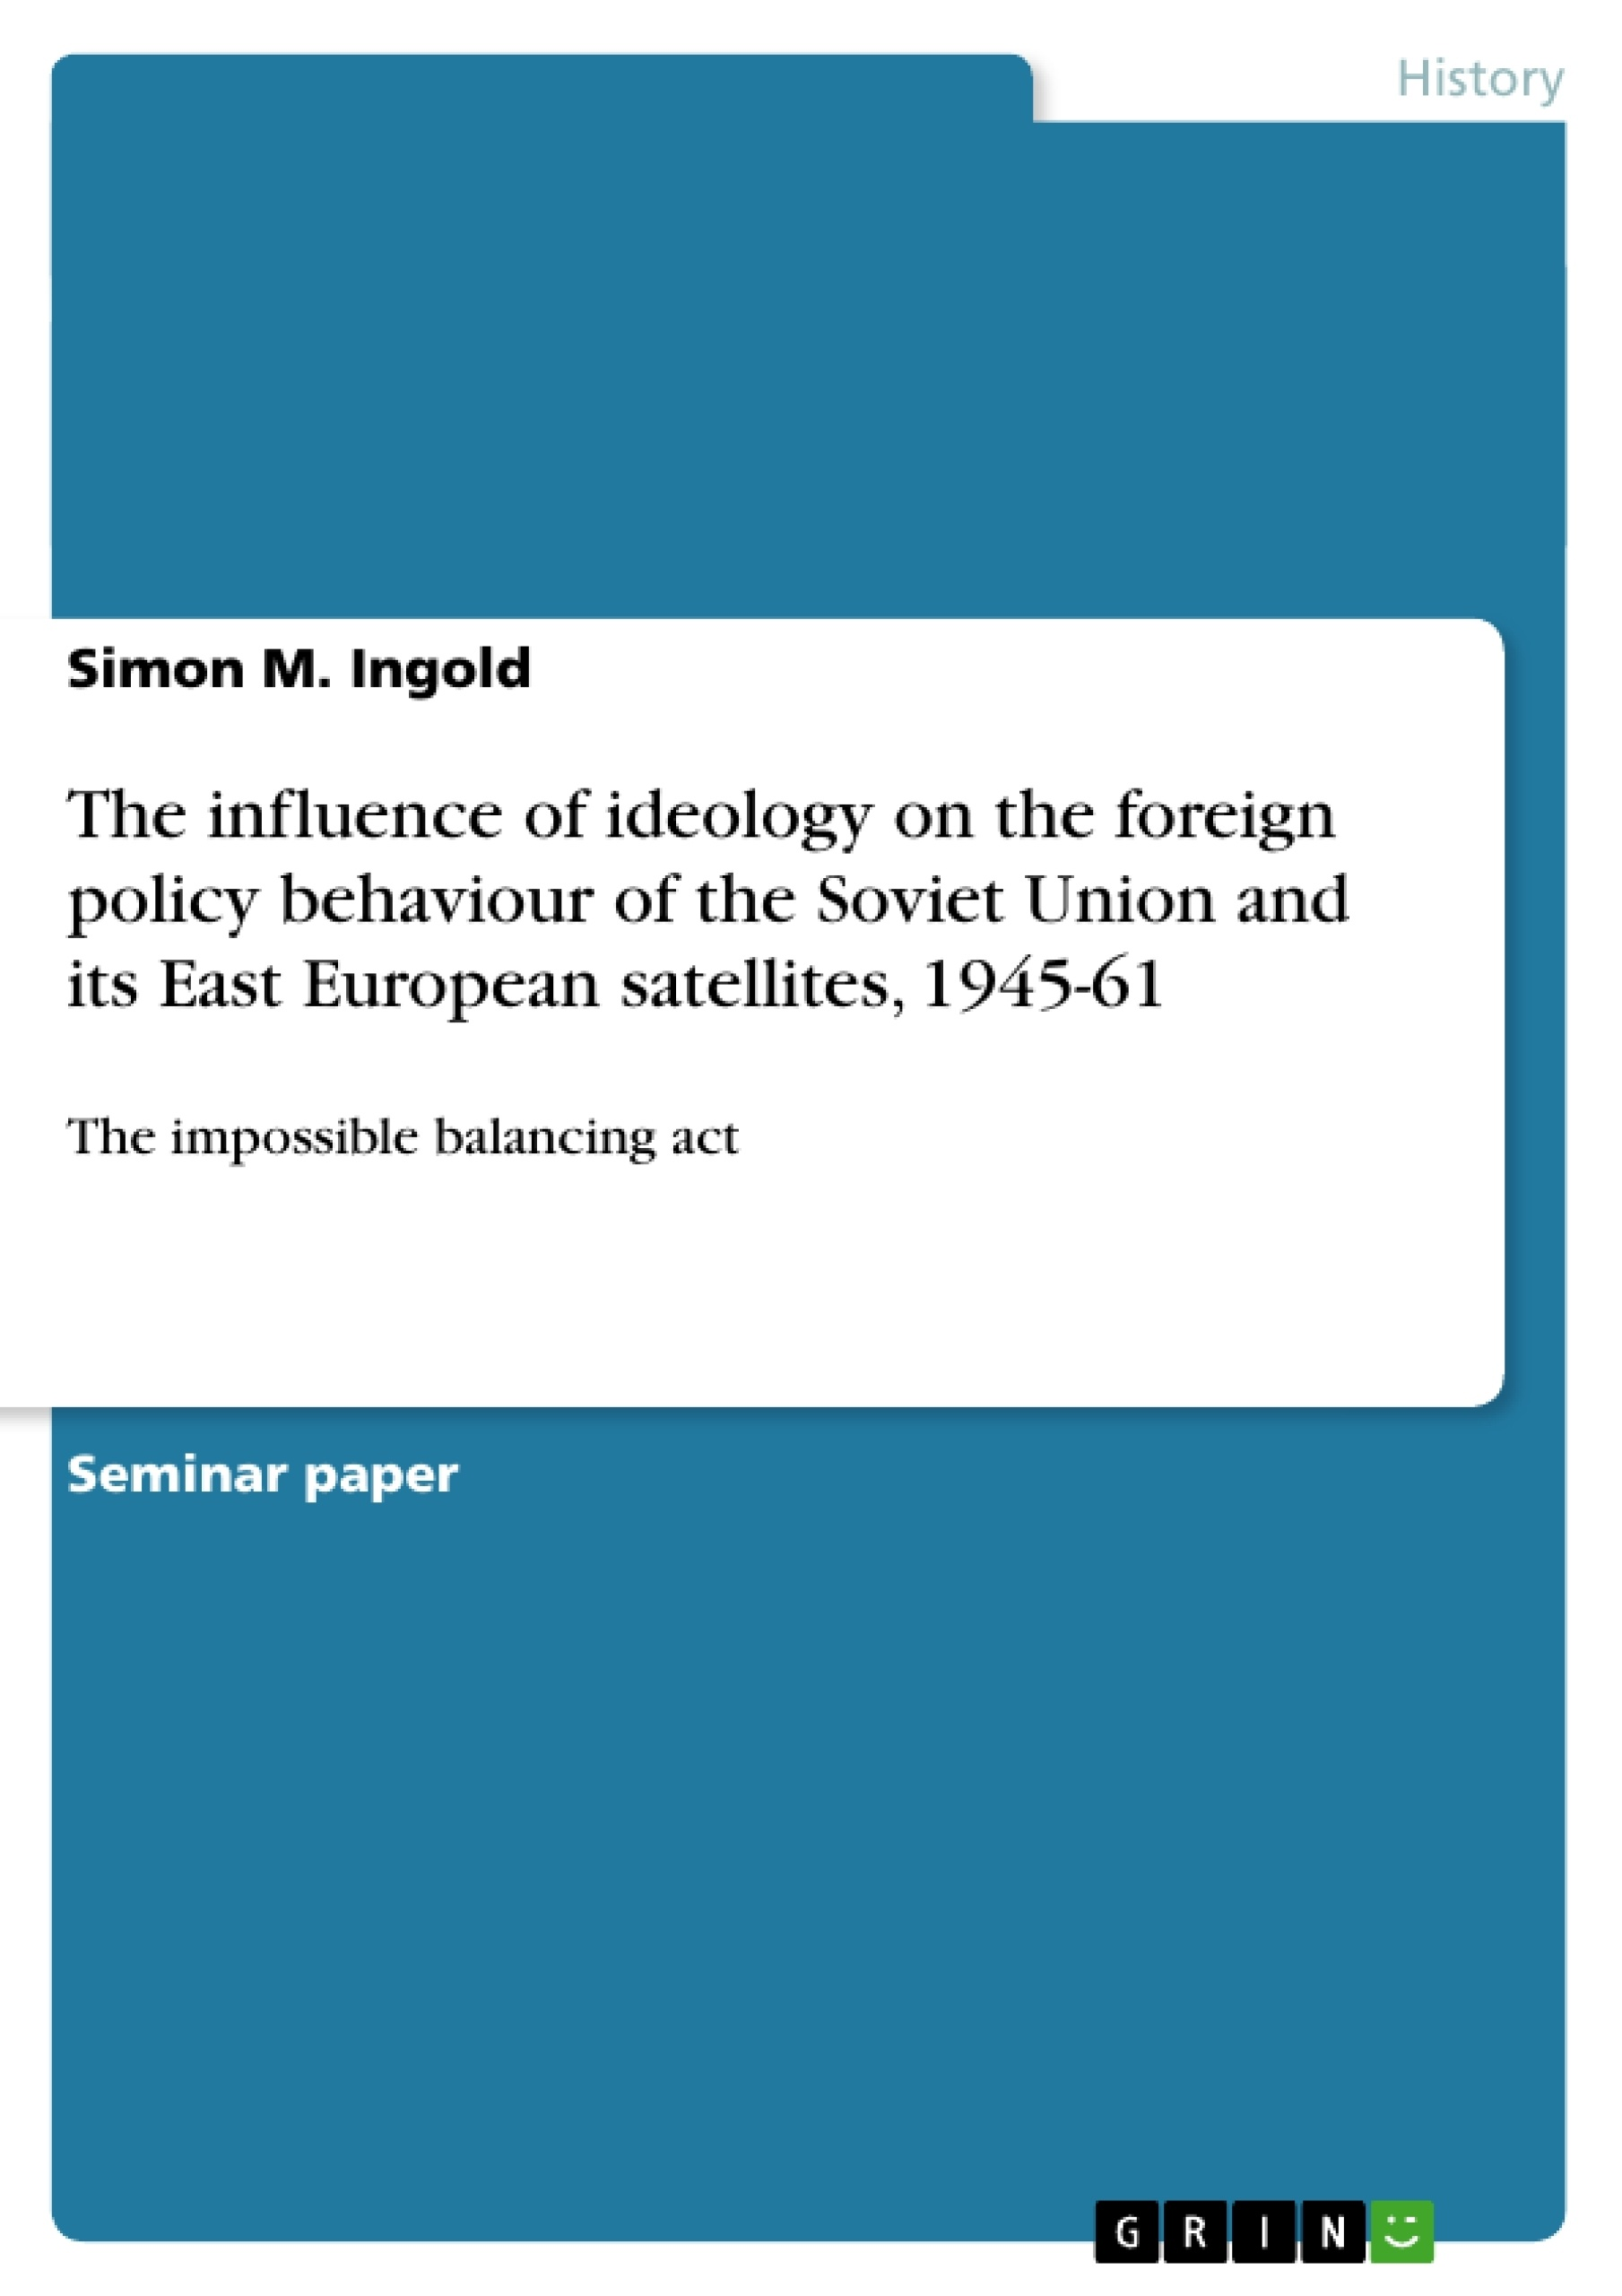 Title: The influence of ideology on the foreign policy behaviour of the Soviet Union and its East European satellites, 1945-61